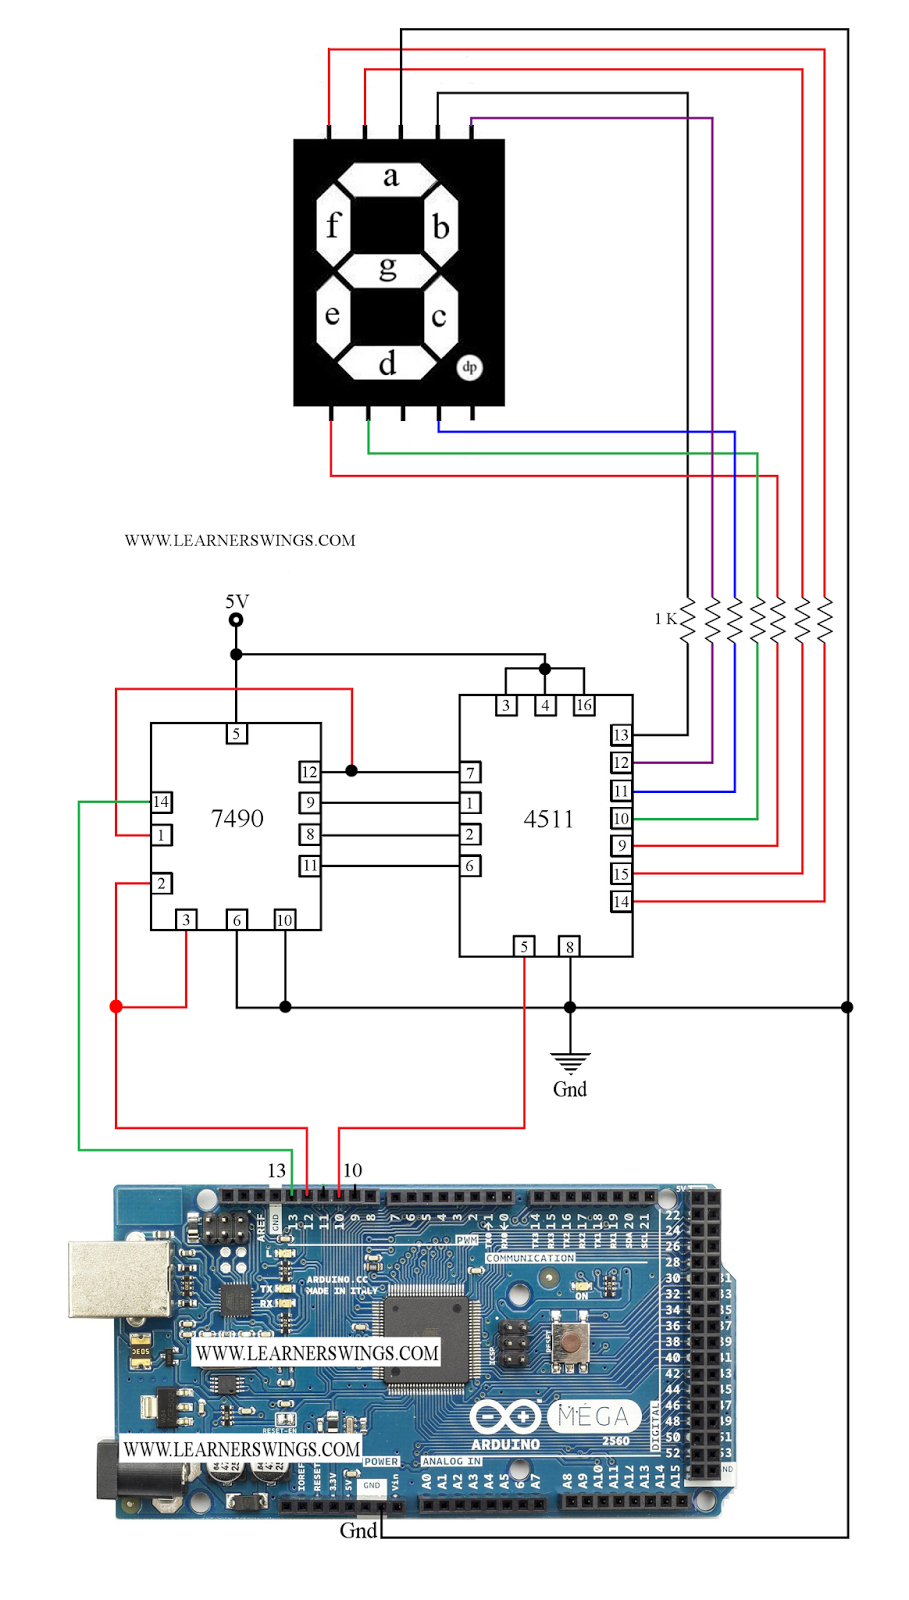 arduino - How do I write code for multiplexer inputs